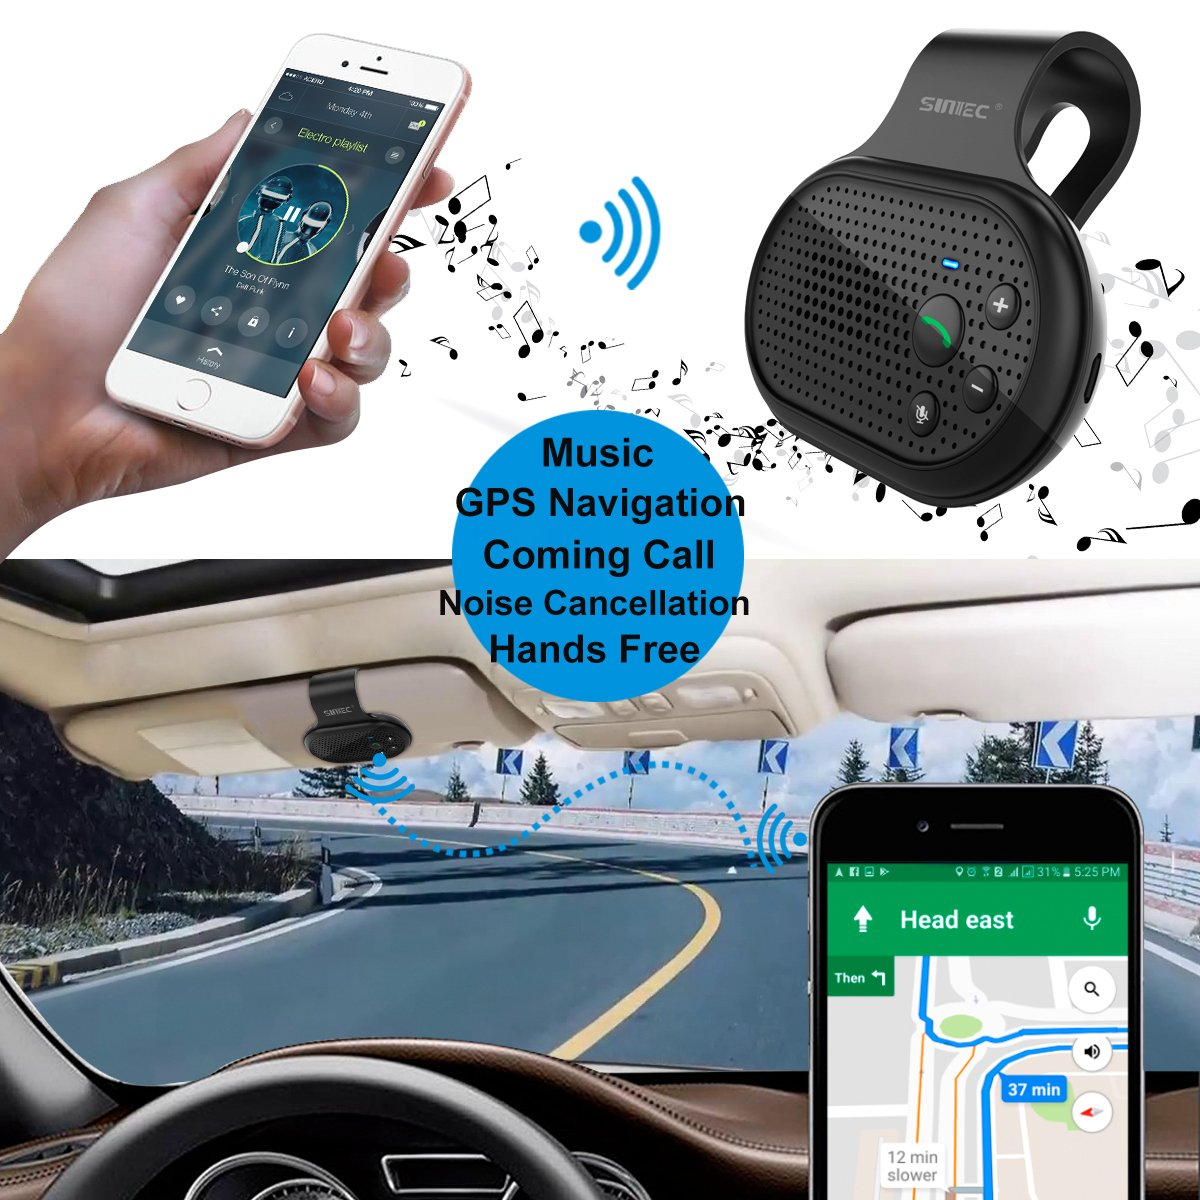 Bluetooth Hands Free Car Speakerphone, SUNITEC Bluetooth Visor Car Kit In-Car Phone Speaker AUTO POWER ON Support GPS, Music and HandsFree Calling for iphone, Samsung and Smartphones [2 Year Warranty] by Sunitec (Image #6)